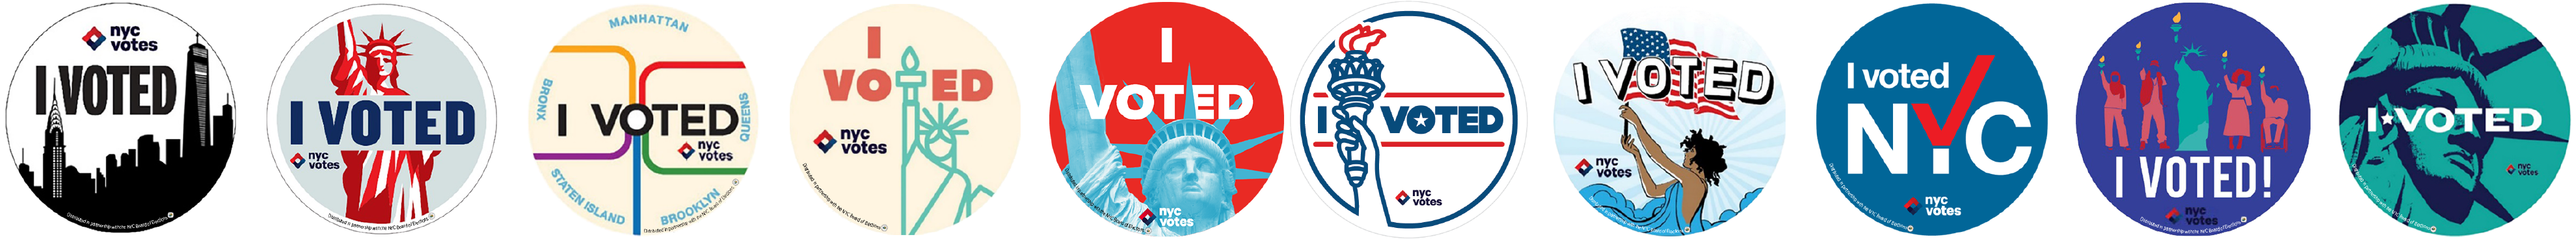 photo regarding I Voted Stickers Printable named I Voted\